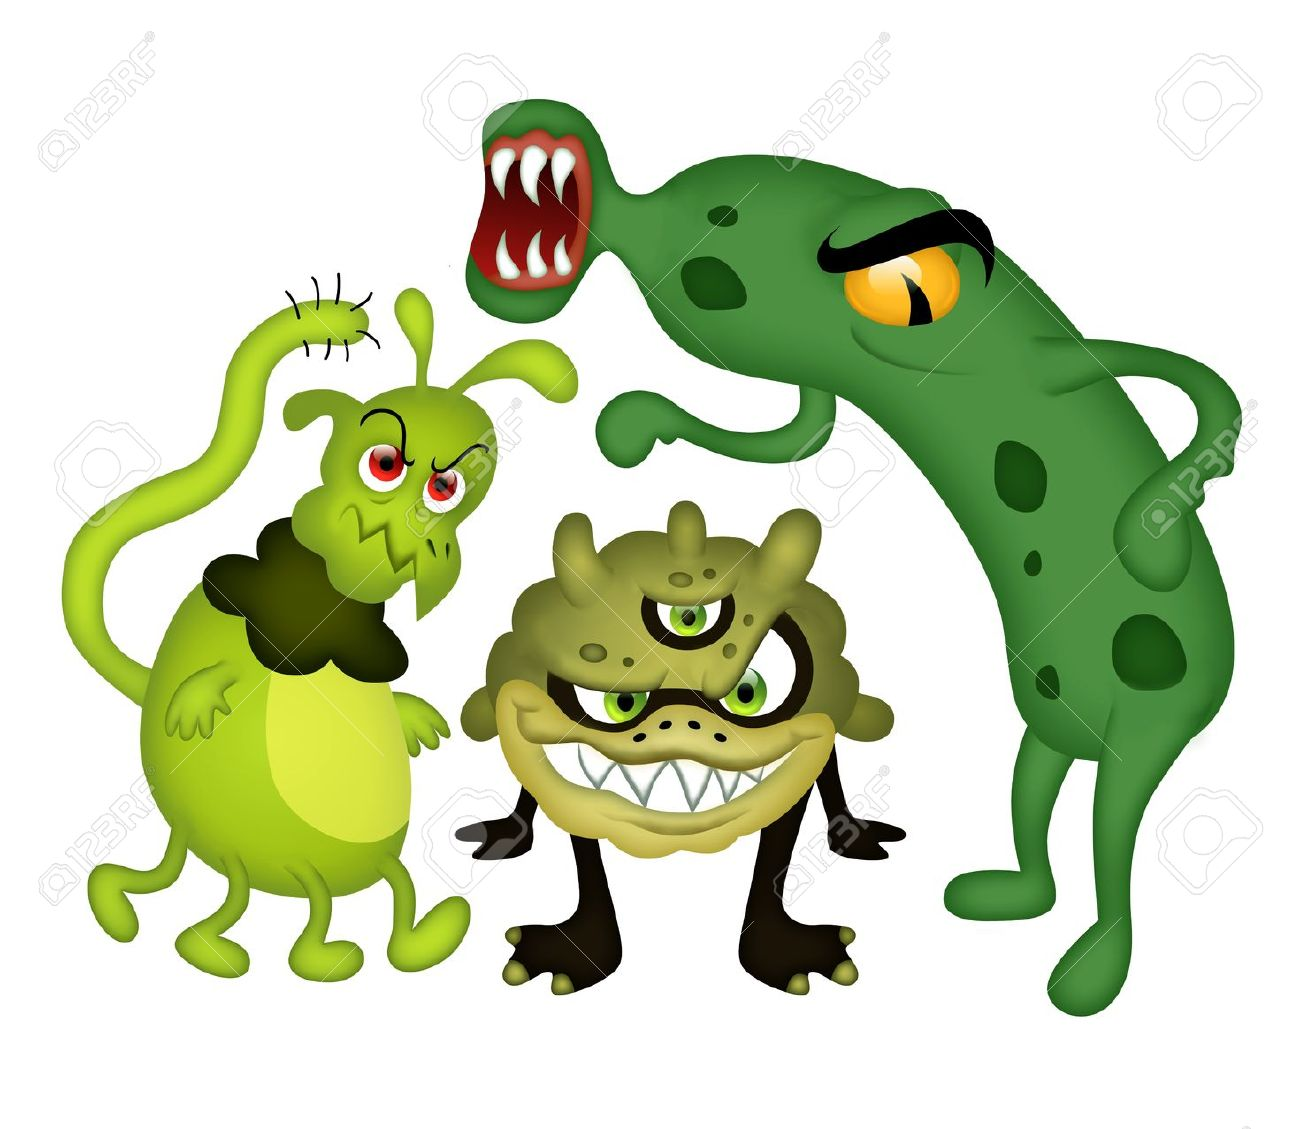 snot virus clipart 20 free cliparts images